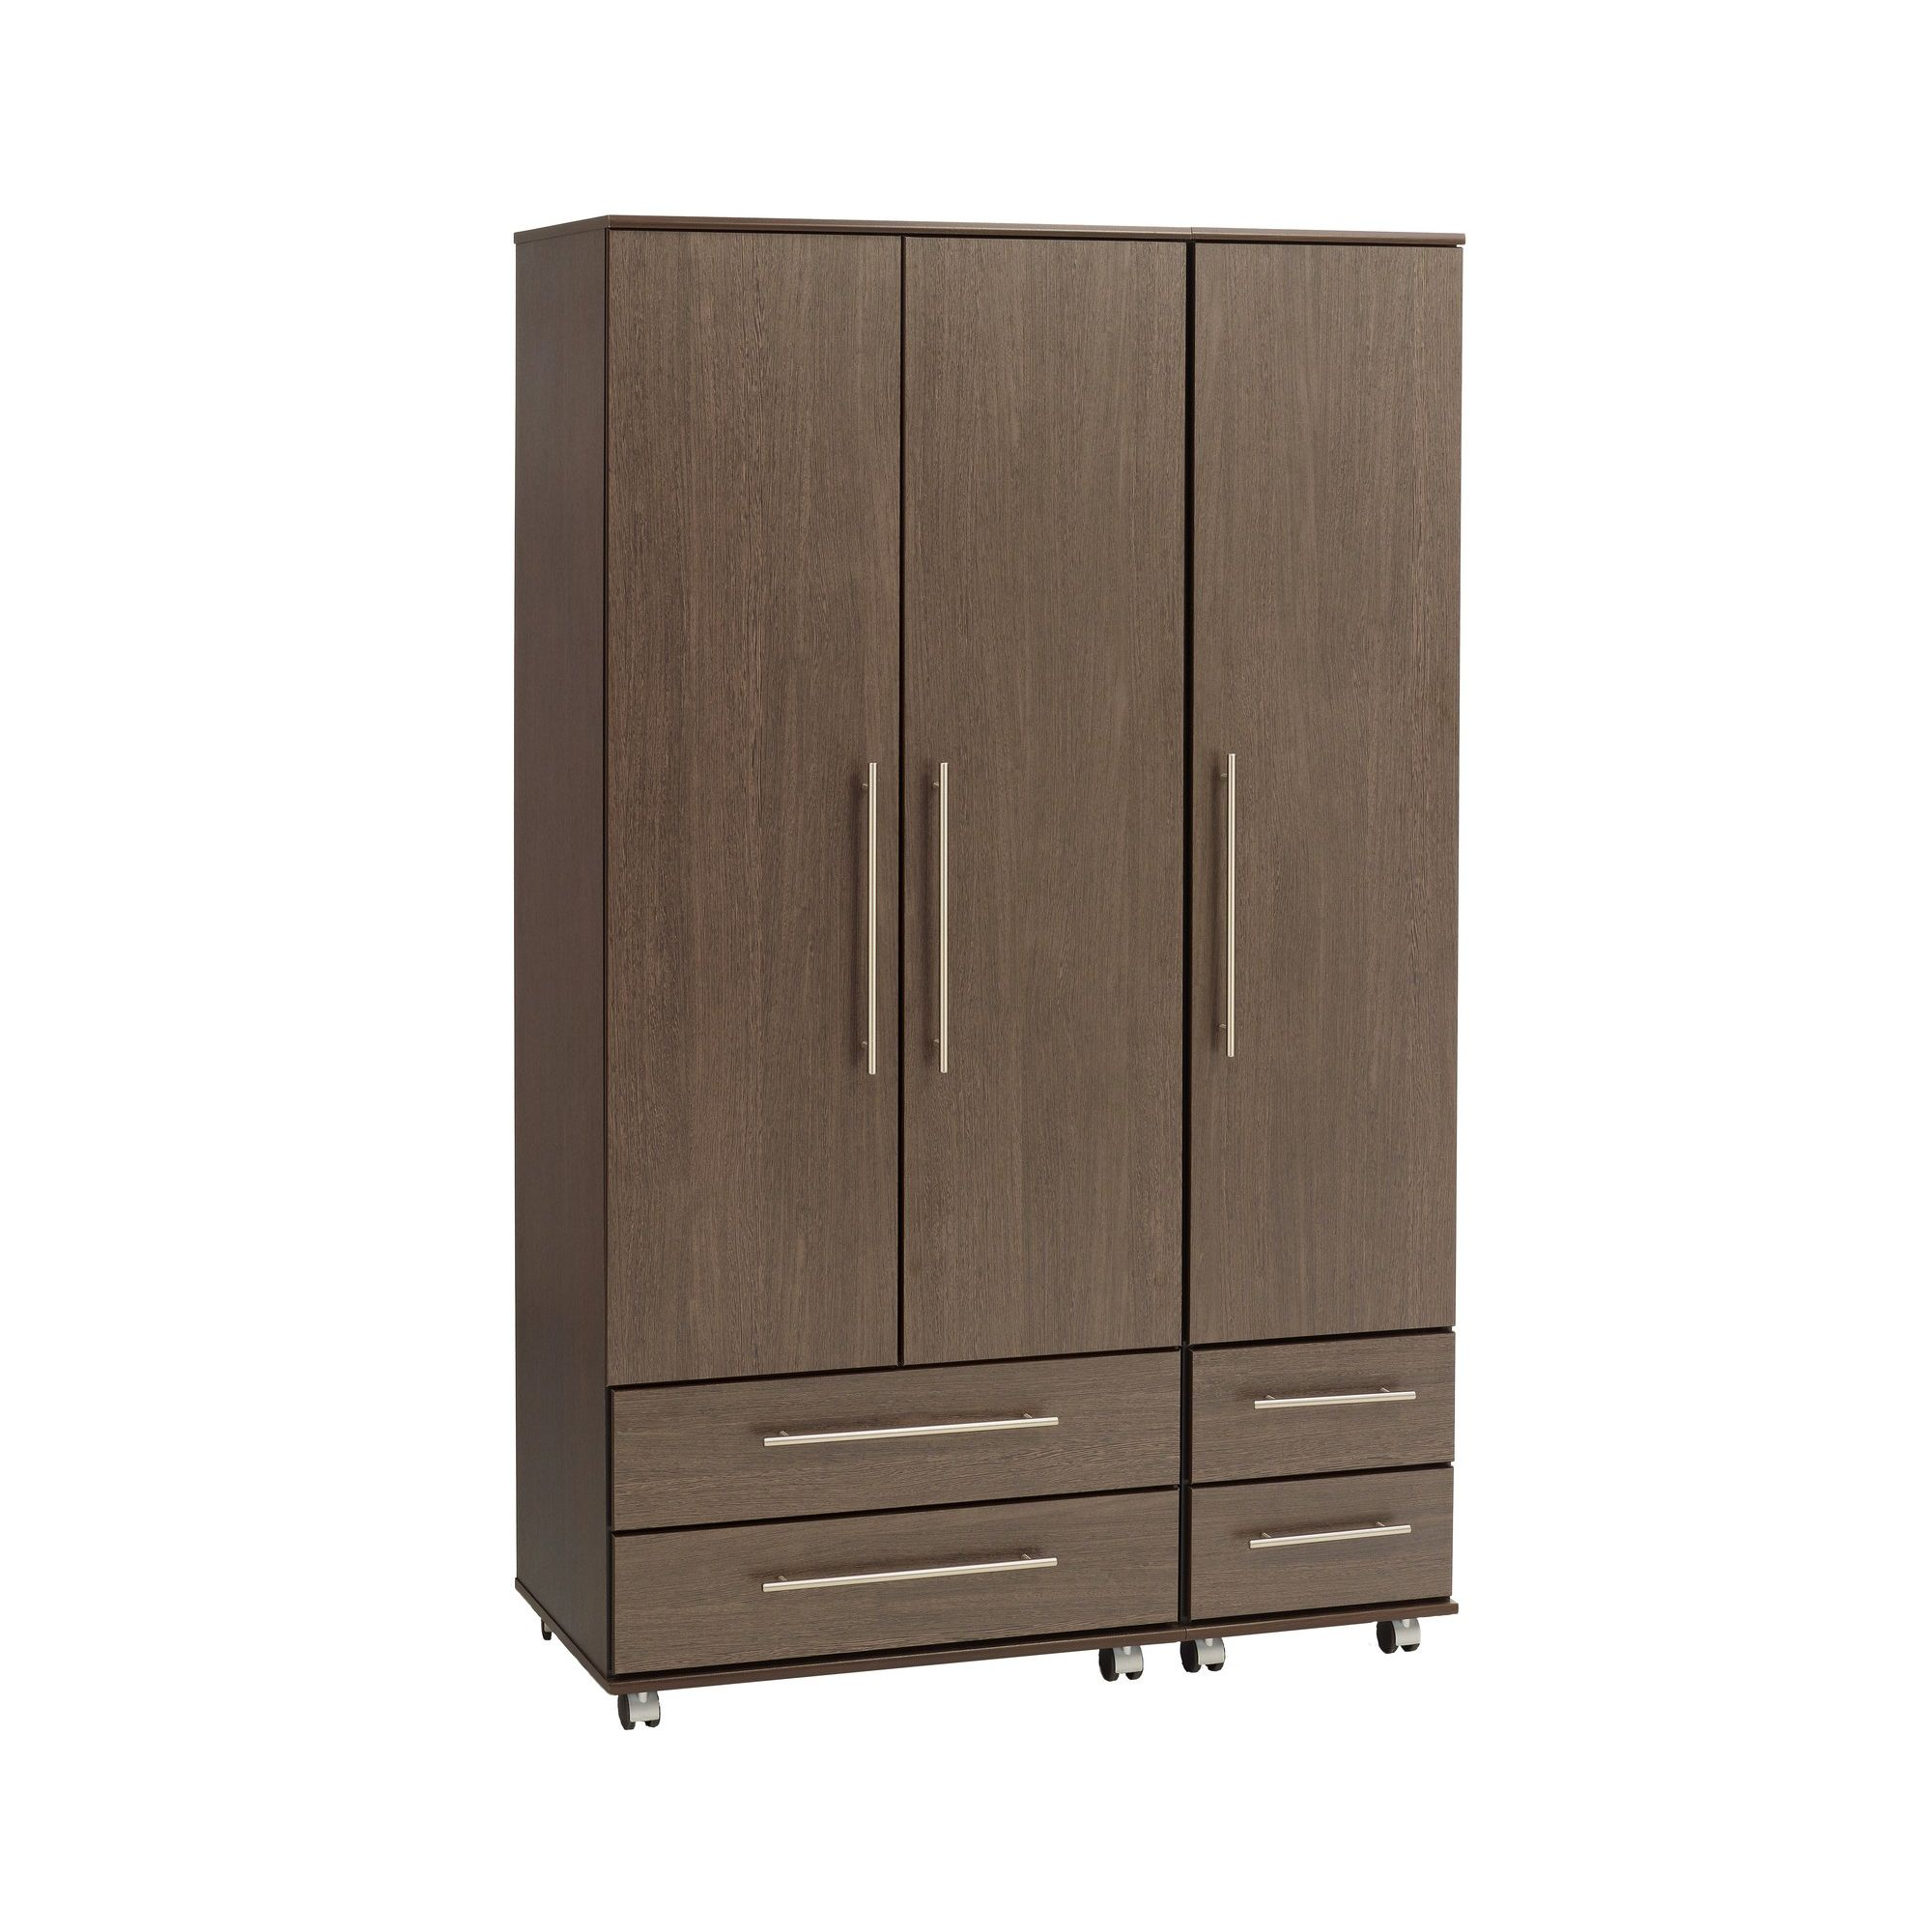 Ideal Furniture New York Triple Wardrobe with Four Drawers - Oak at Tesco Direct